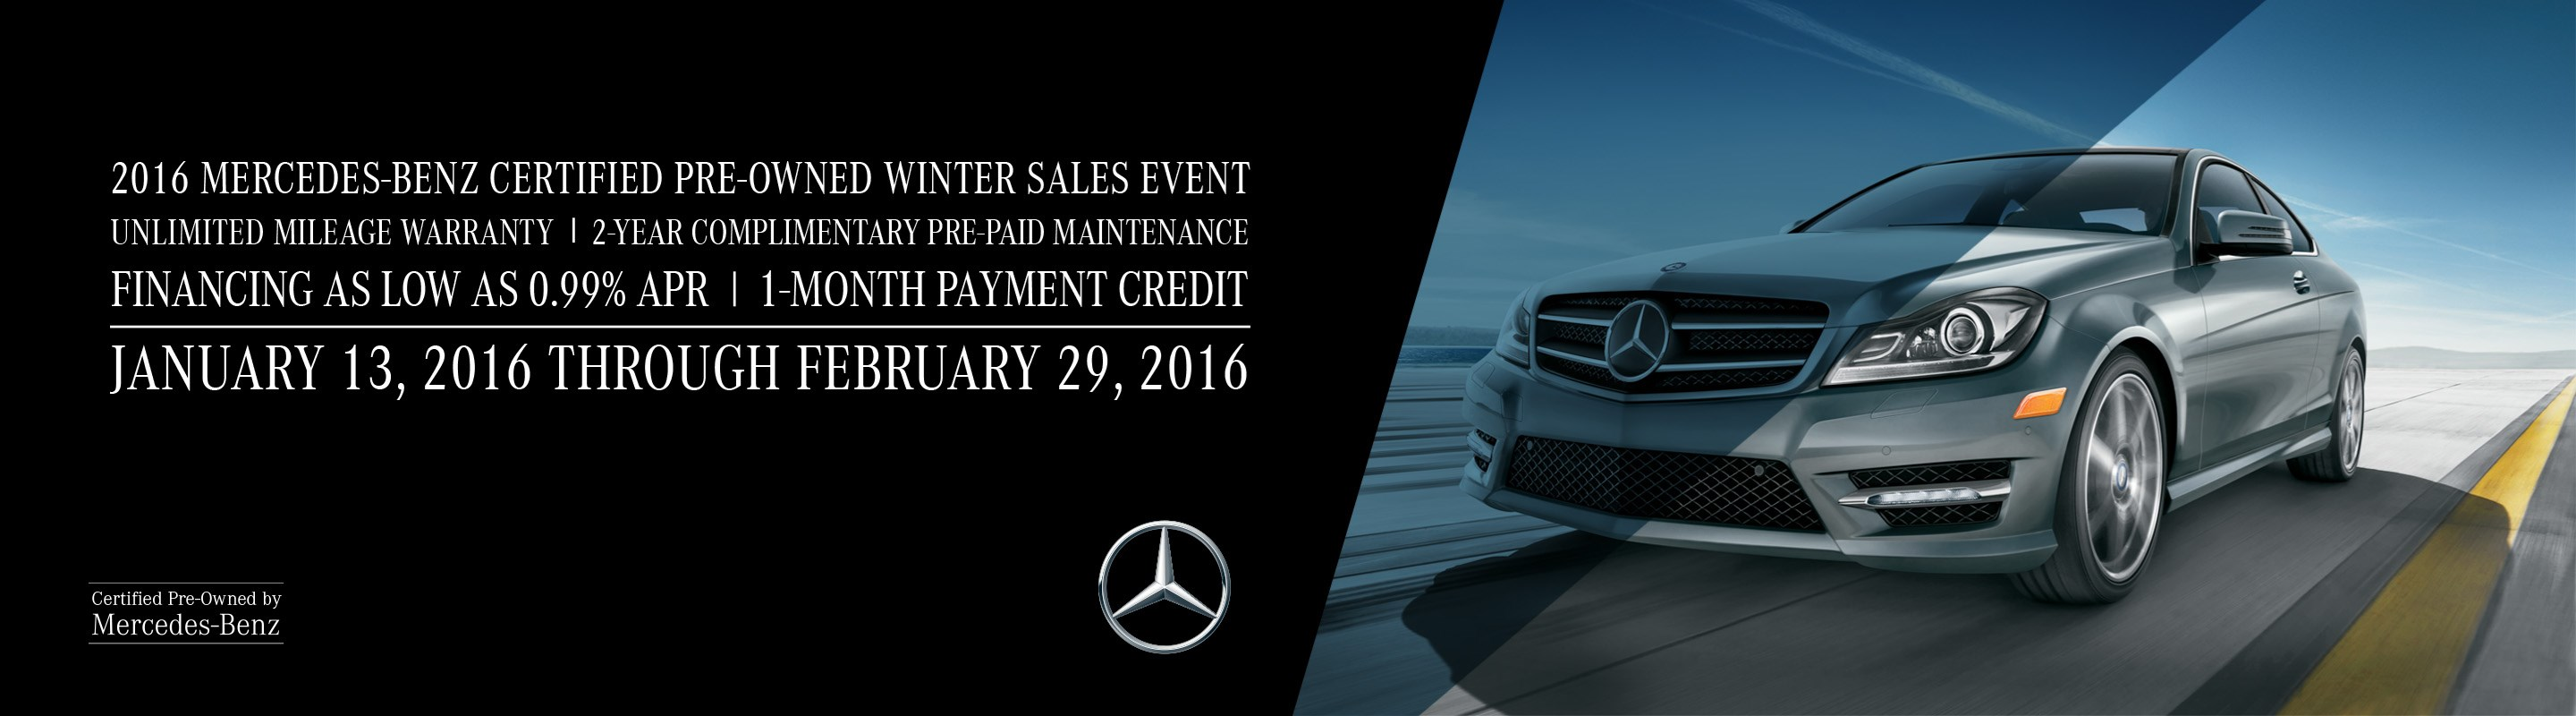 Sears imported autos february 2016 newsletter for Mercedes benz newsletter